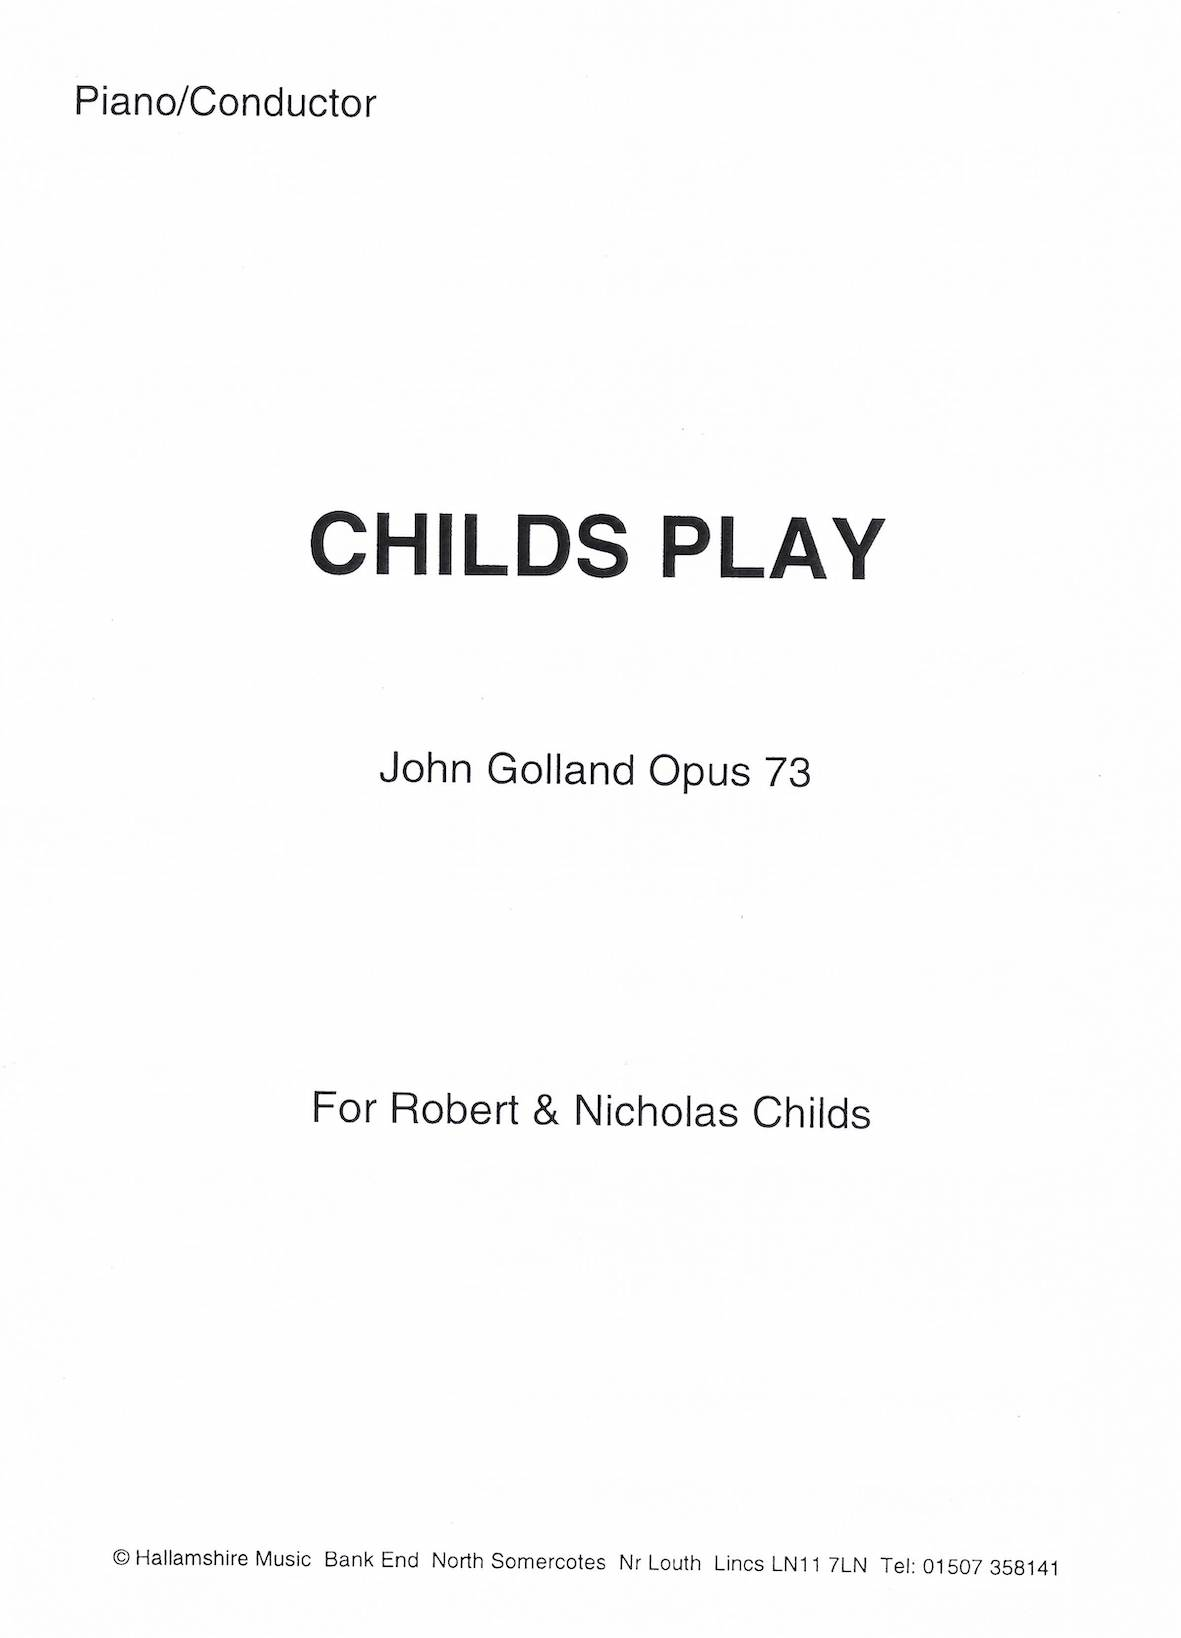 childs play1